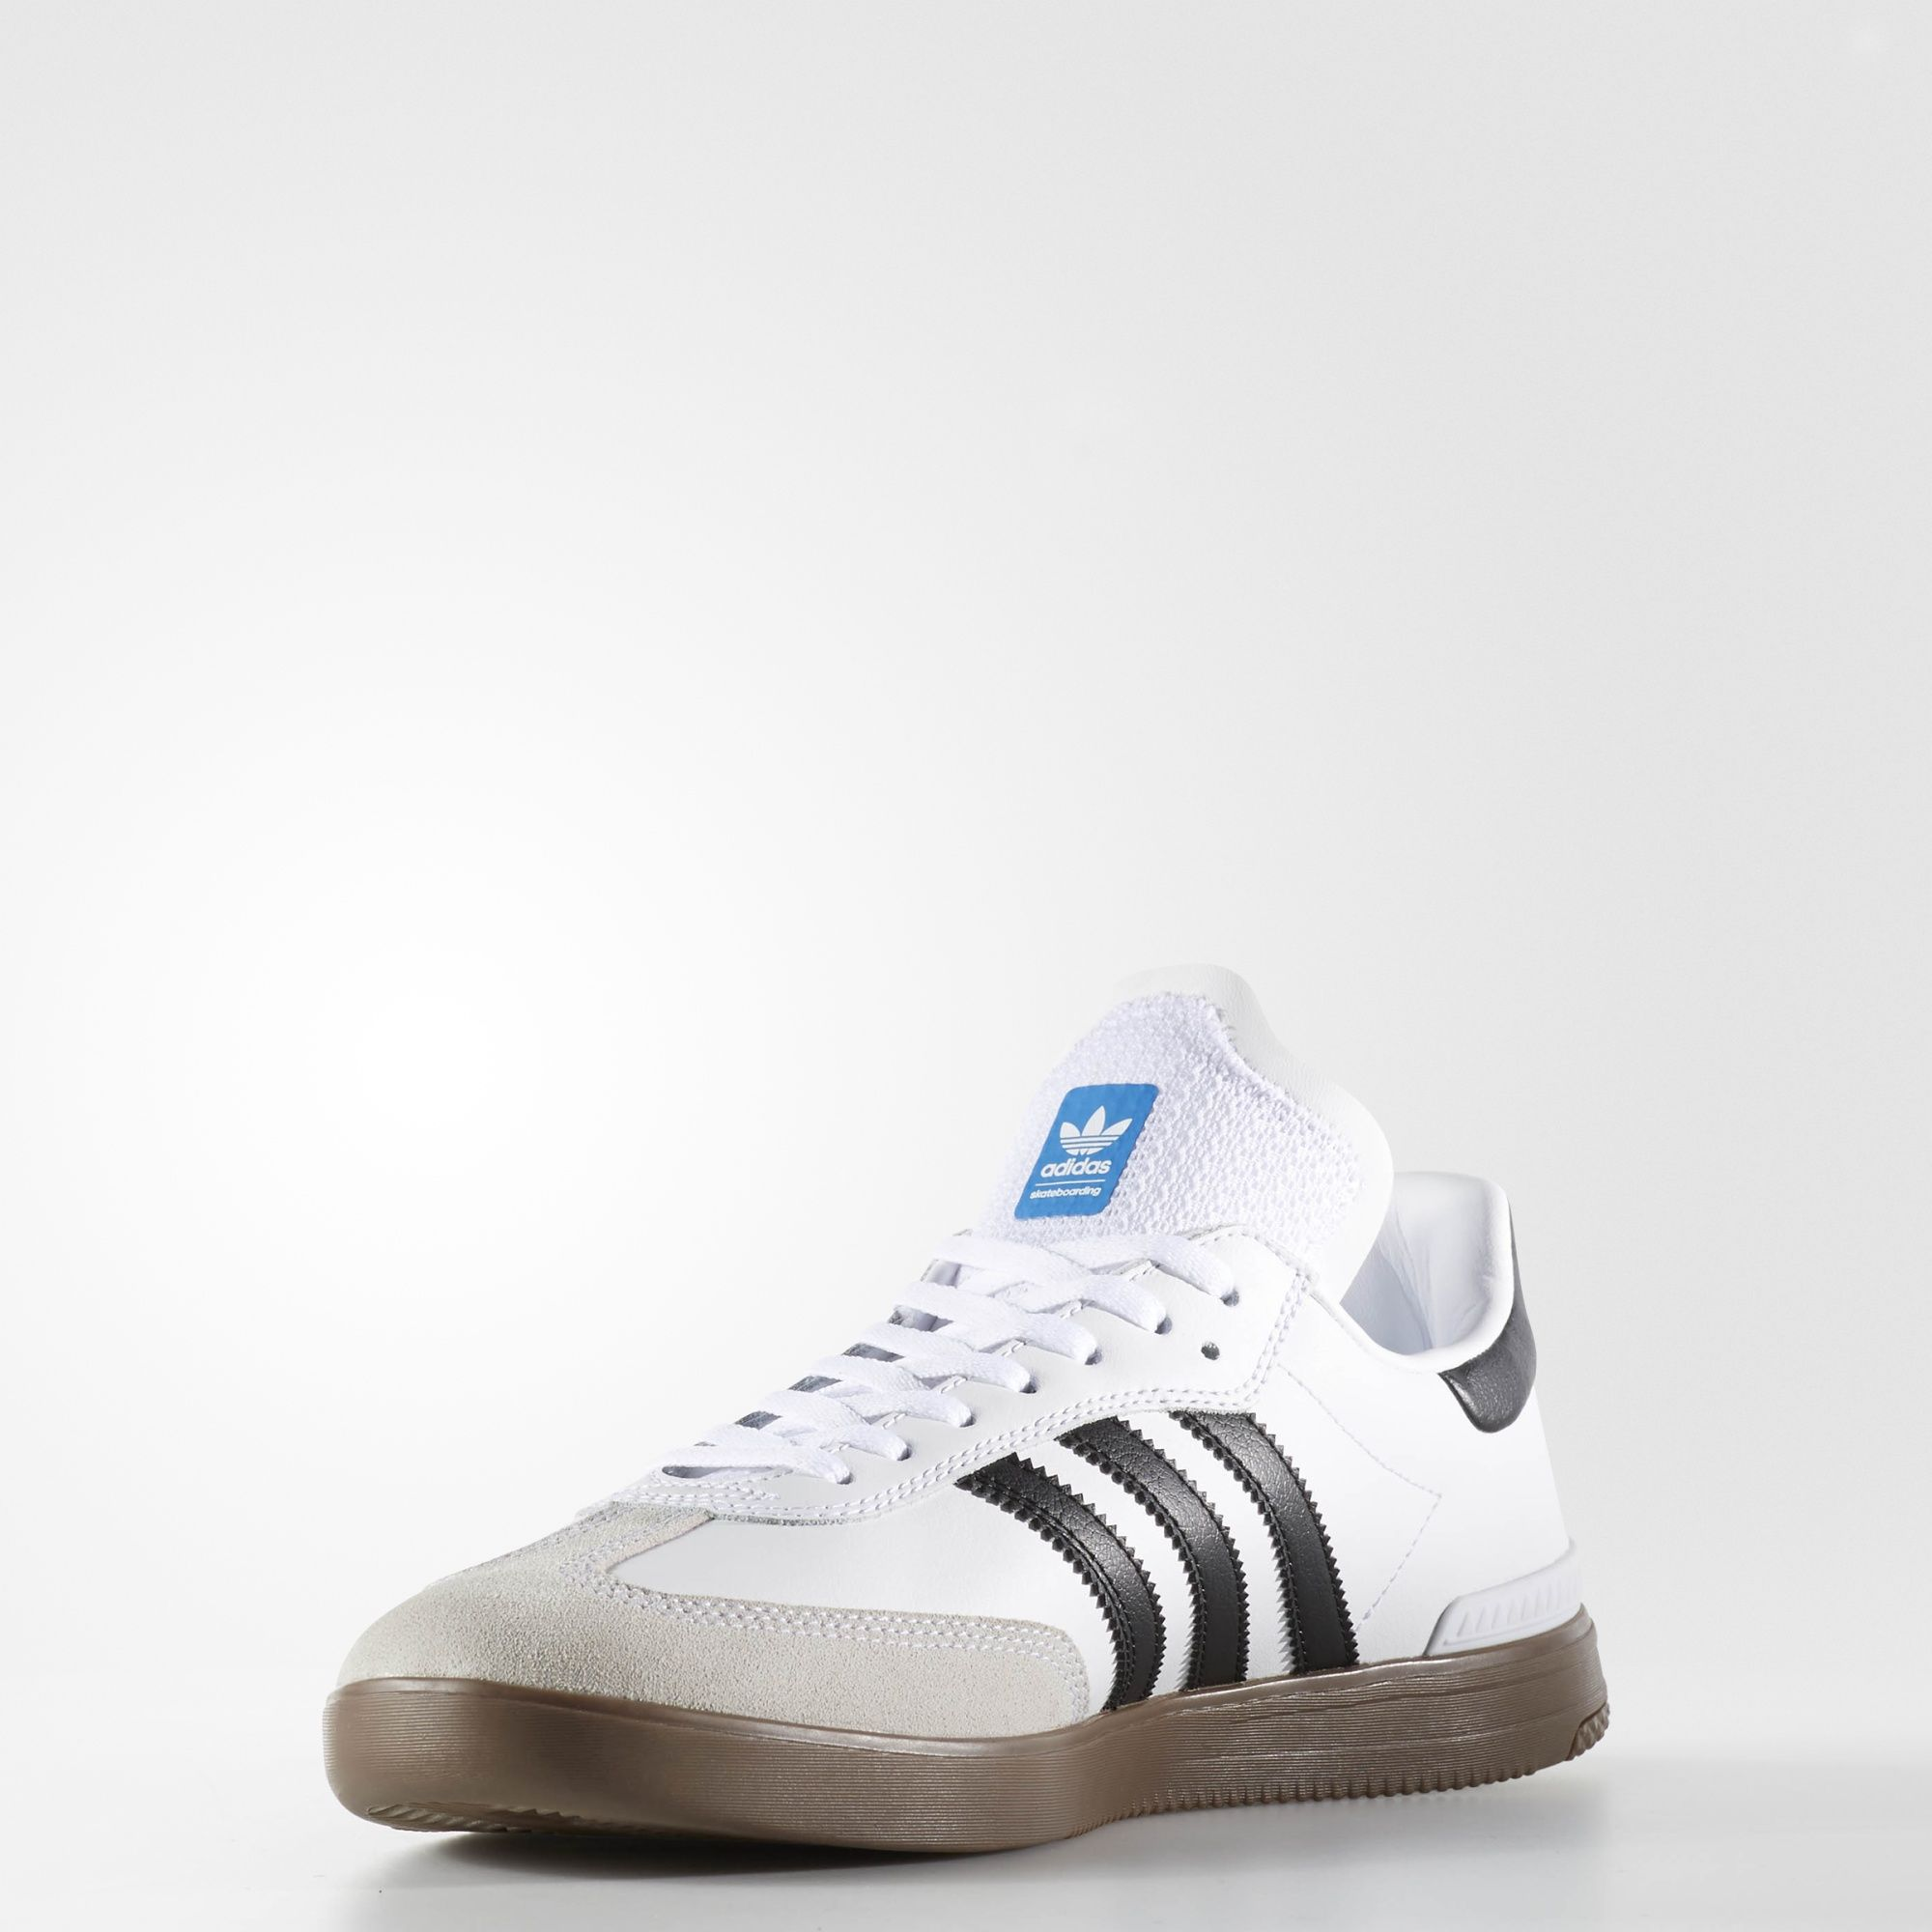 adidas samba adv shoes footwear white core black gum. Black Bedroom Furniture Sets. Home Design Ideas